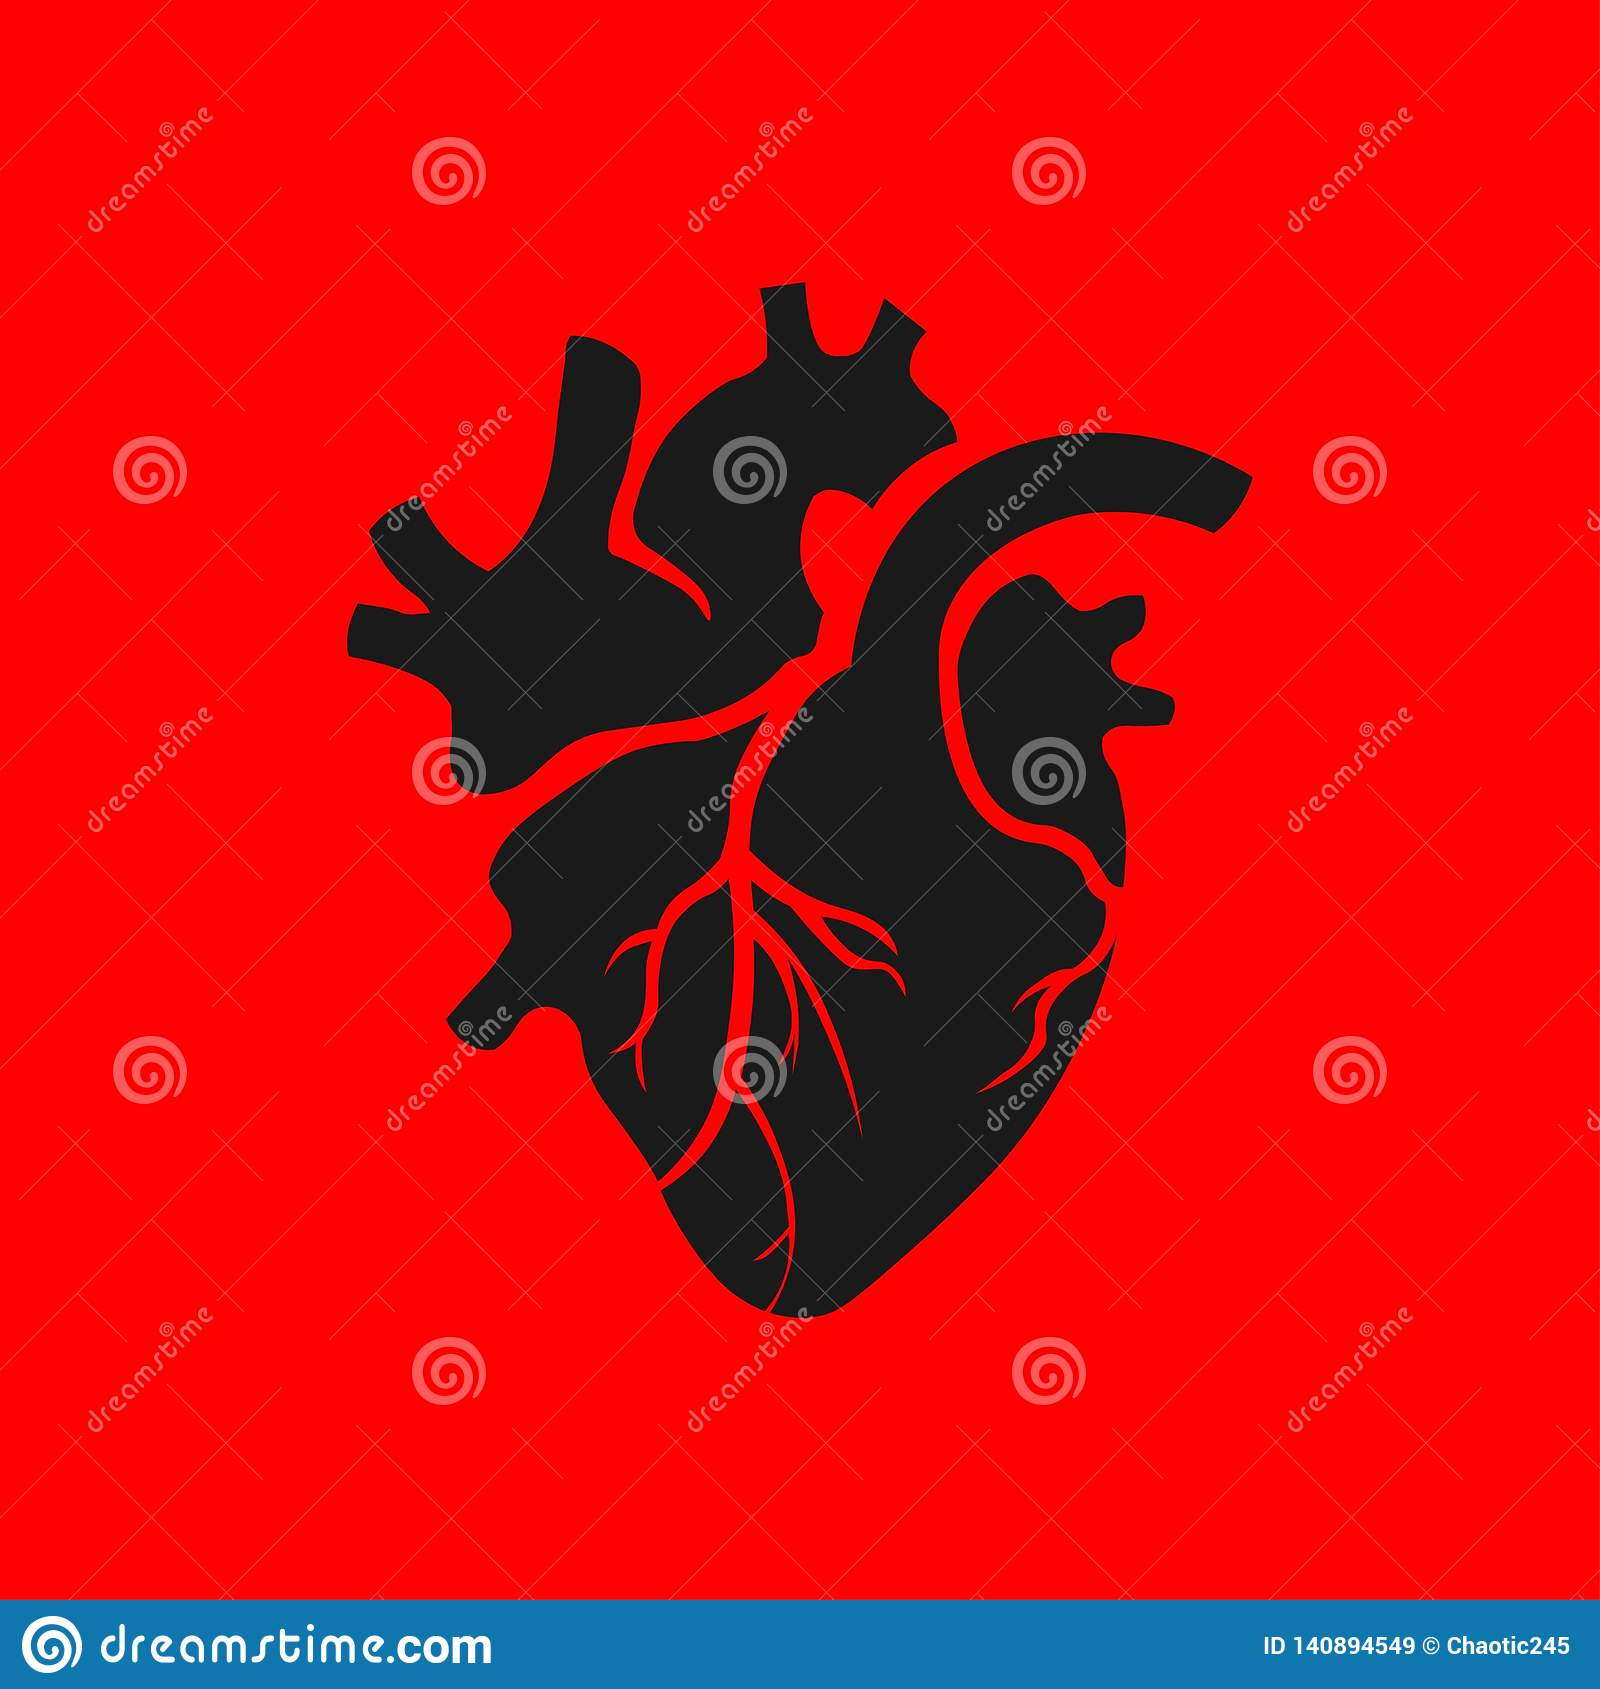 Isolated Black Human Heart Illustration On Red Background